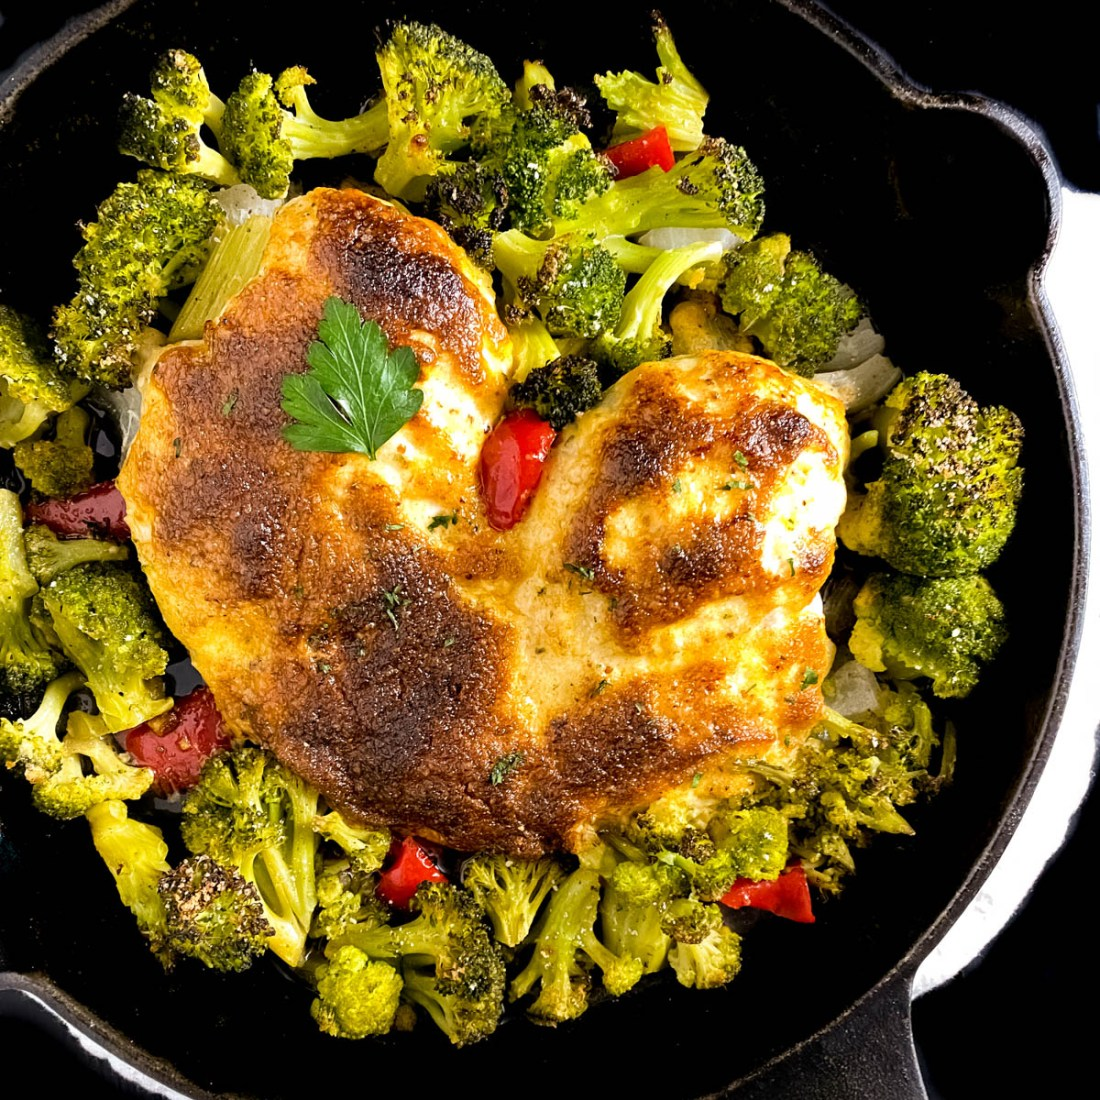 Square shot of Cajun Style Melt in Your Mouth Chicken with Broccoli in a black cast iron skillet.